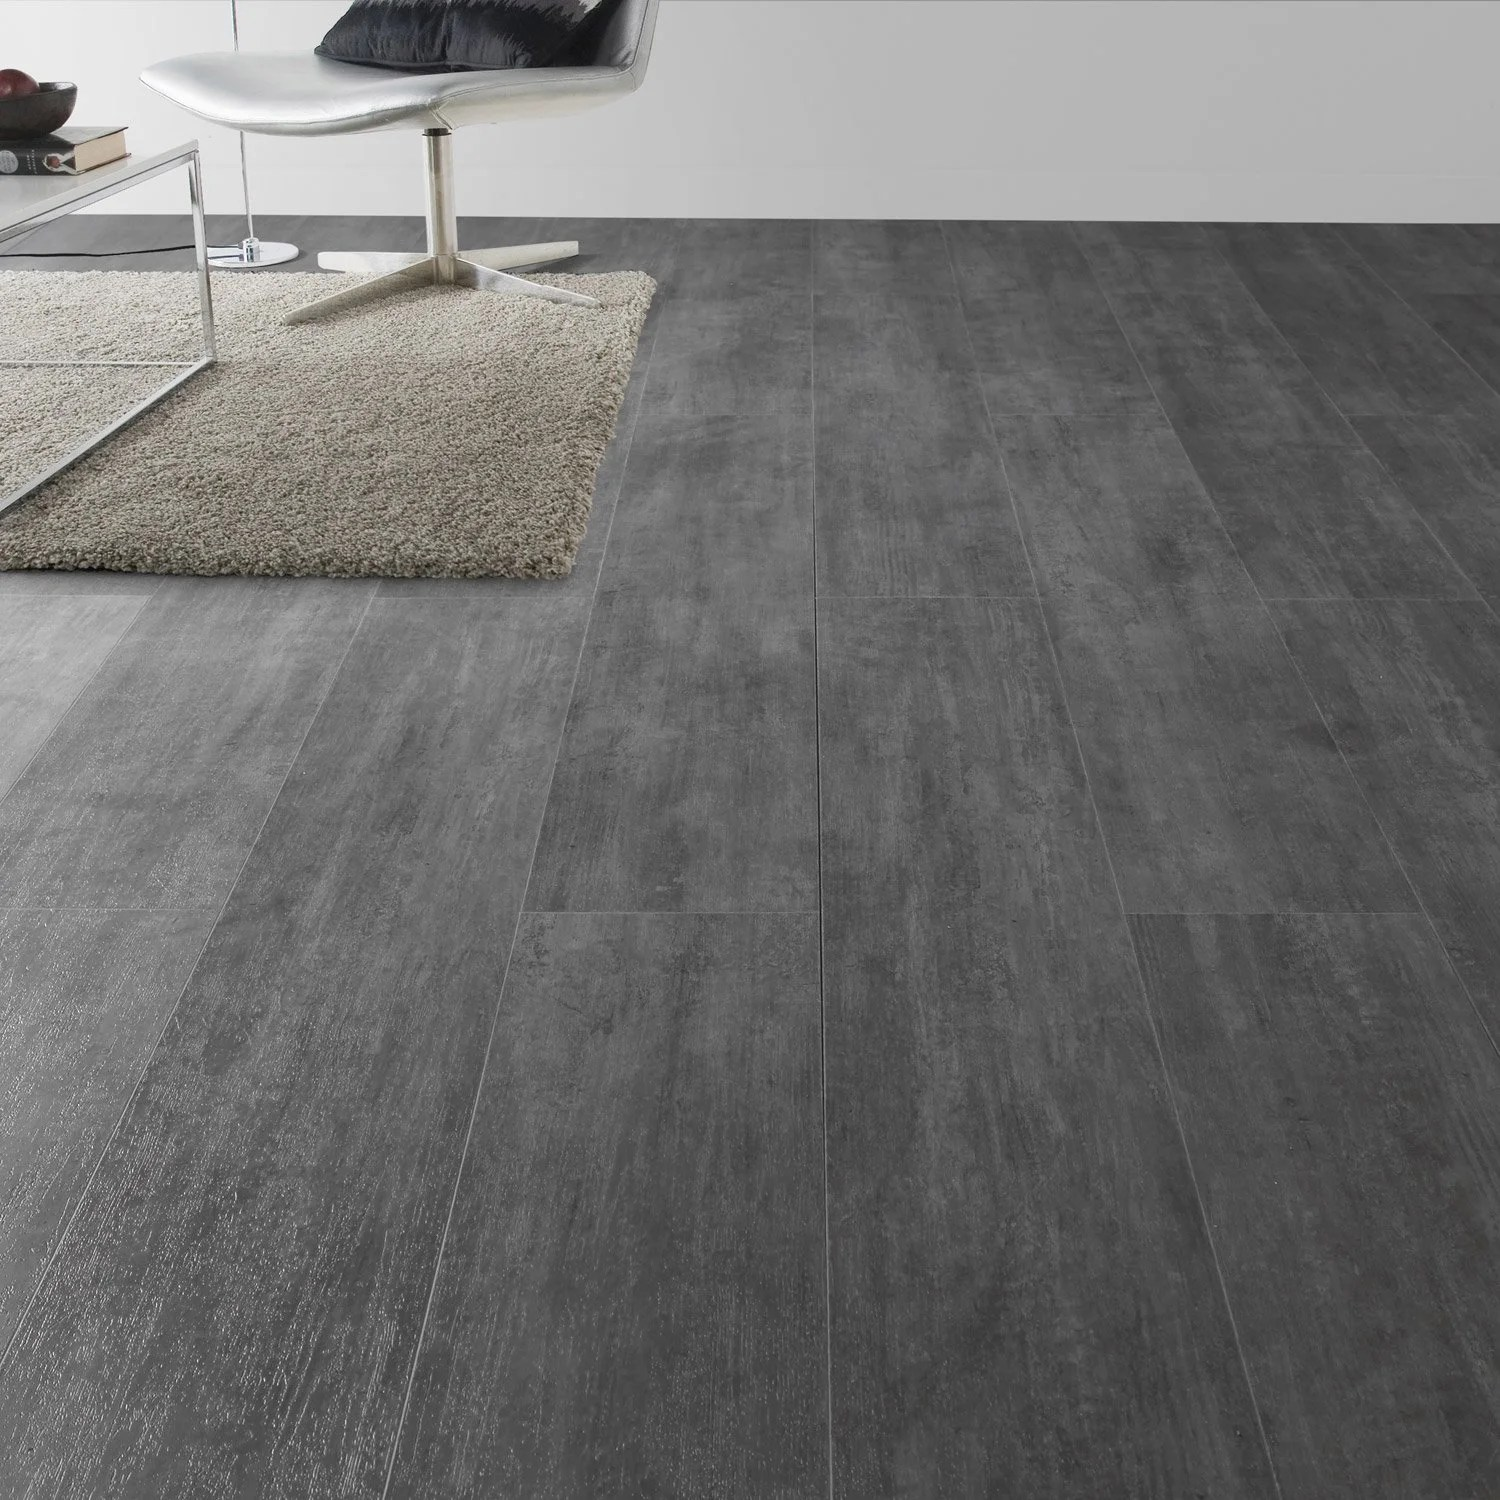 Carrelage Lame Gris Lame Pvc Clipsable Gris Nolita Grey Senso Lock 43 Gerflor